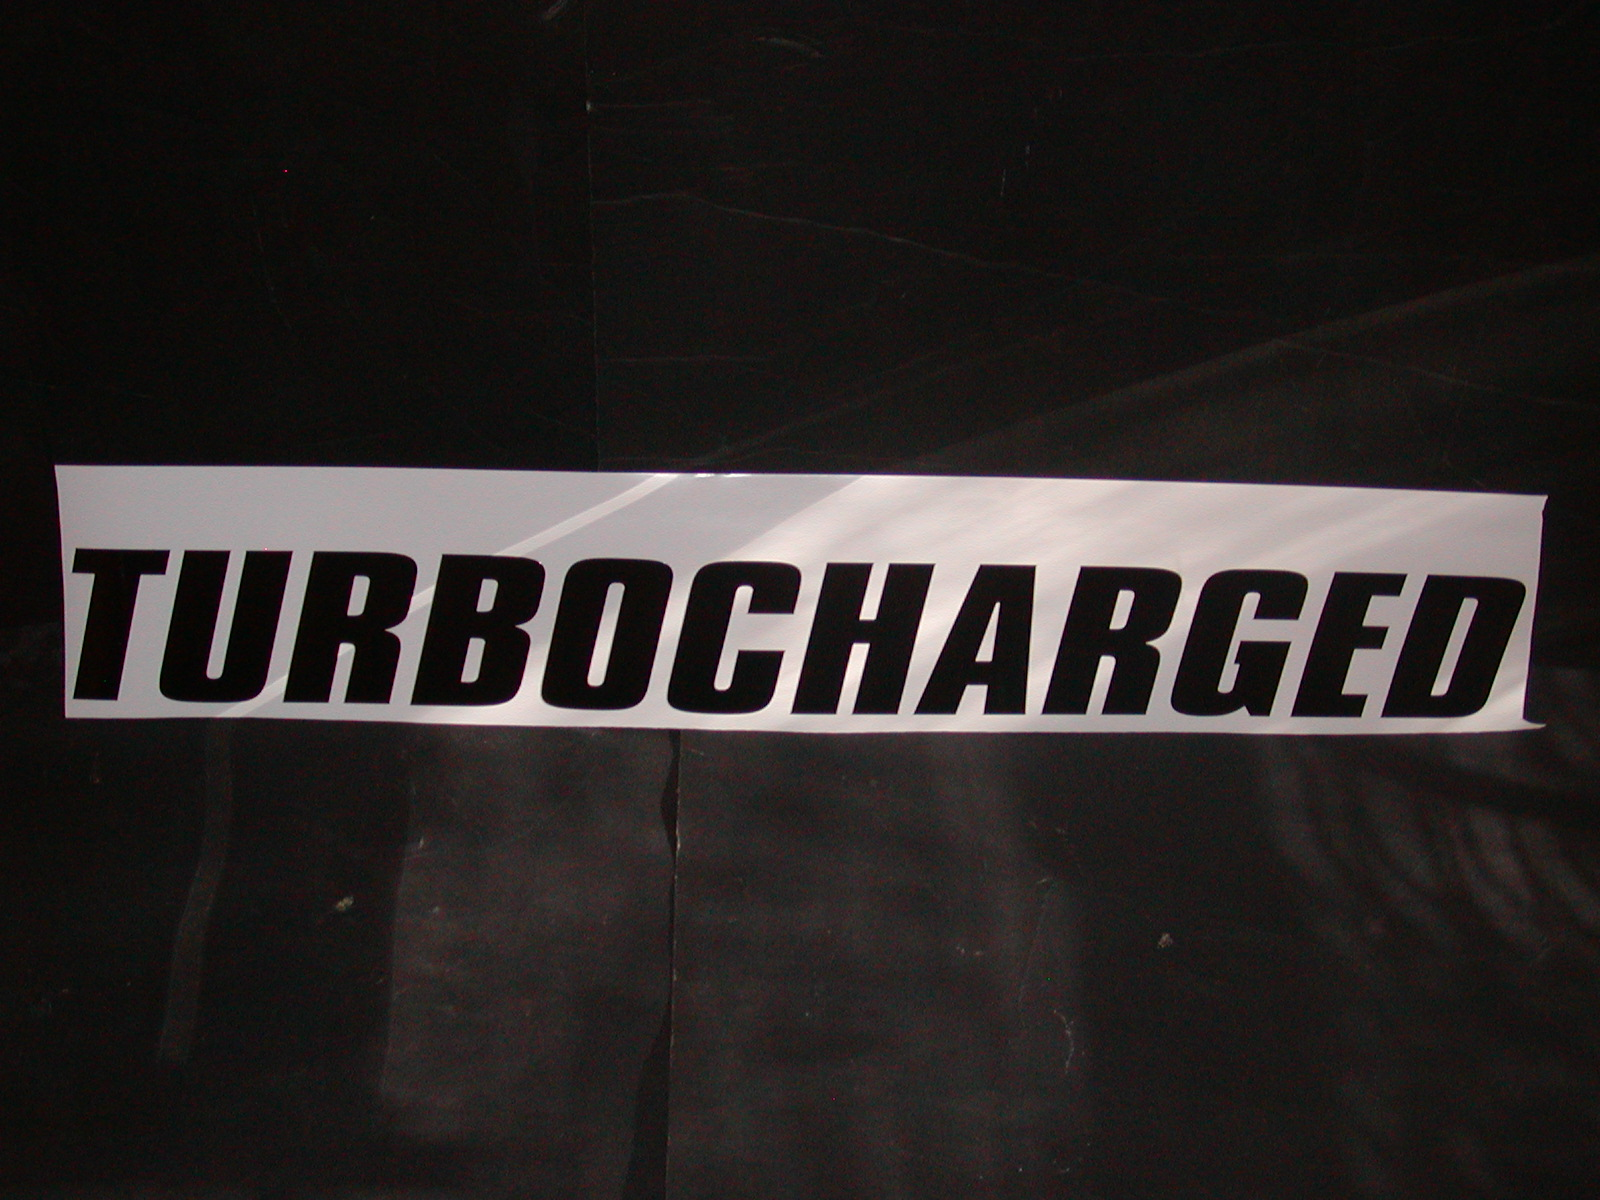 �Turbocharged #1 Windshield or window Decal